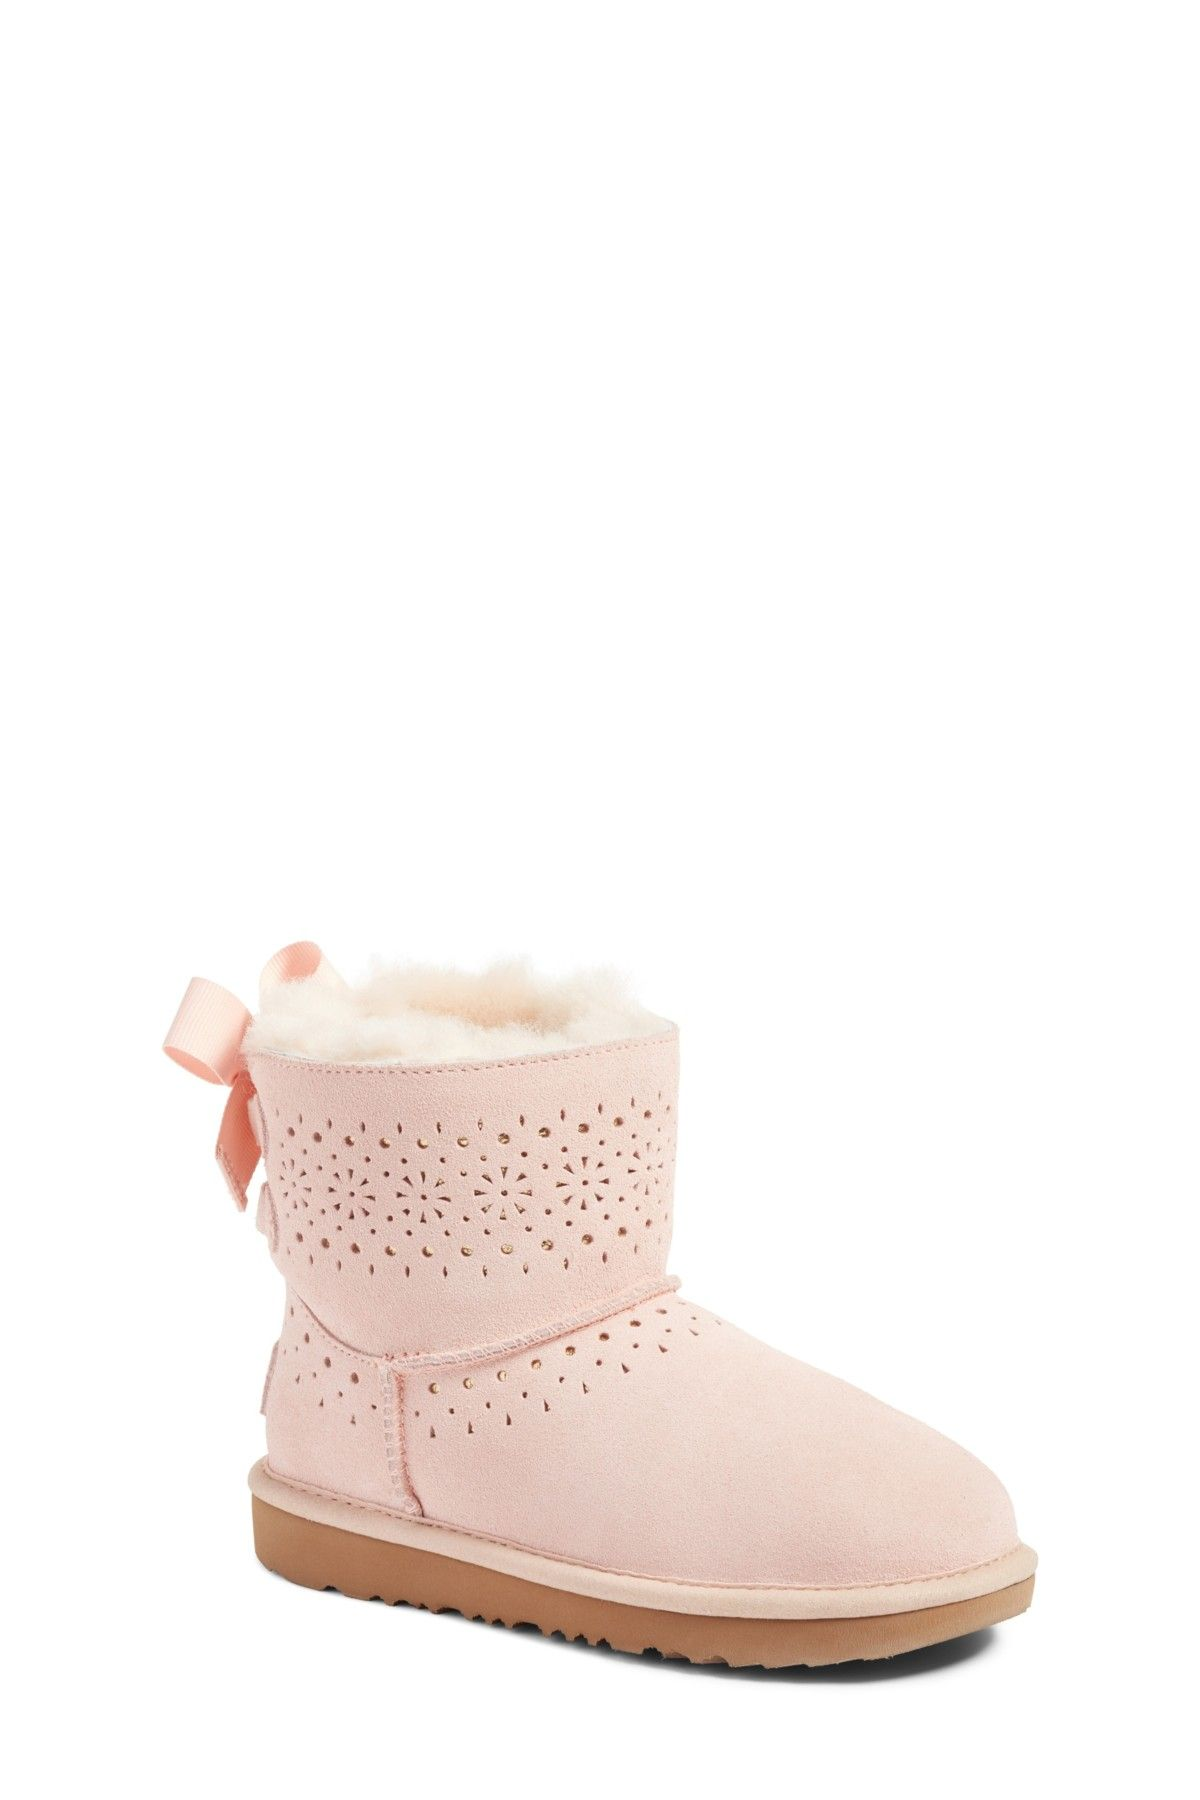 68ceeb2a164d8 Dae Perforated Genuine Shearling Tie Back Boot (Toddler   Little Kid) by  UGG on  nordstrom rack